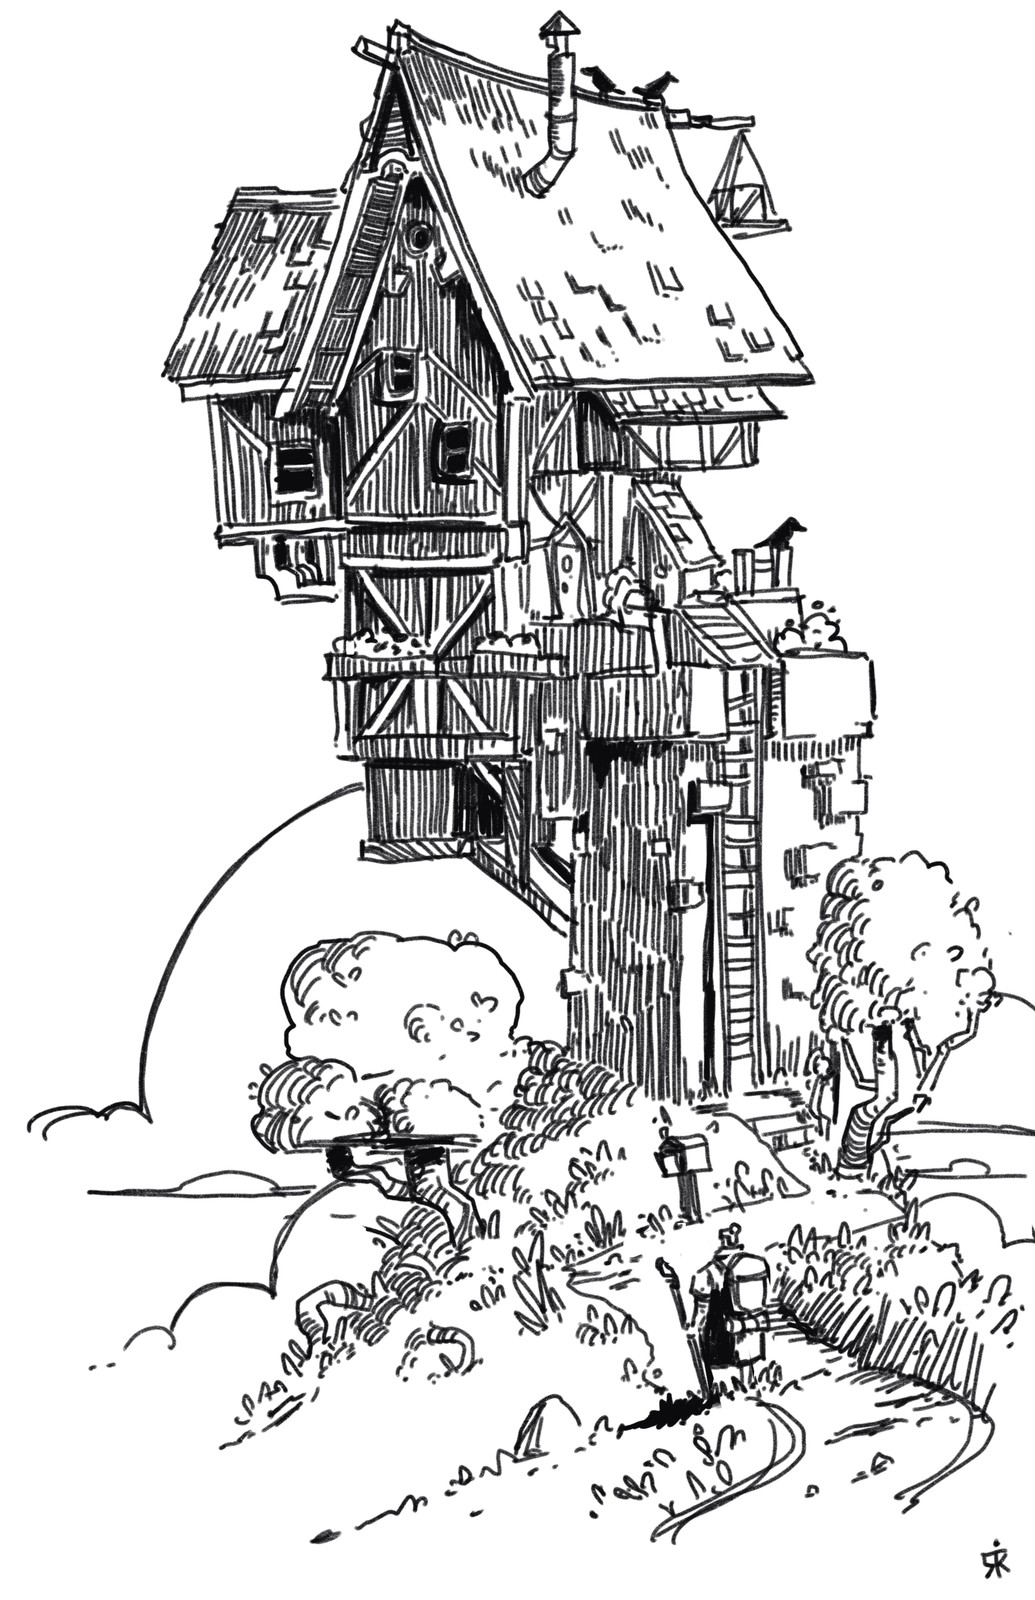 Inktober Day 2: Dilapidated House